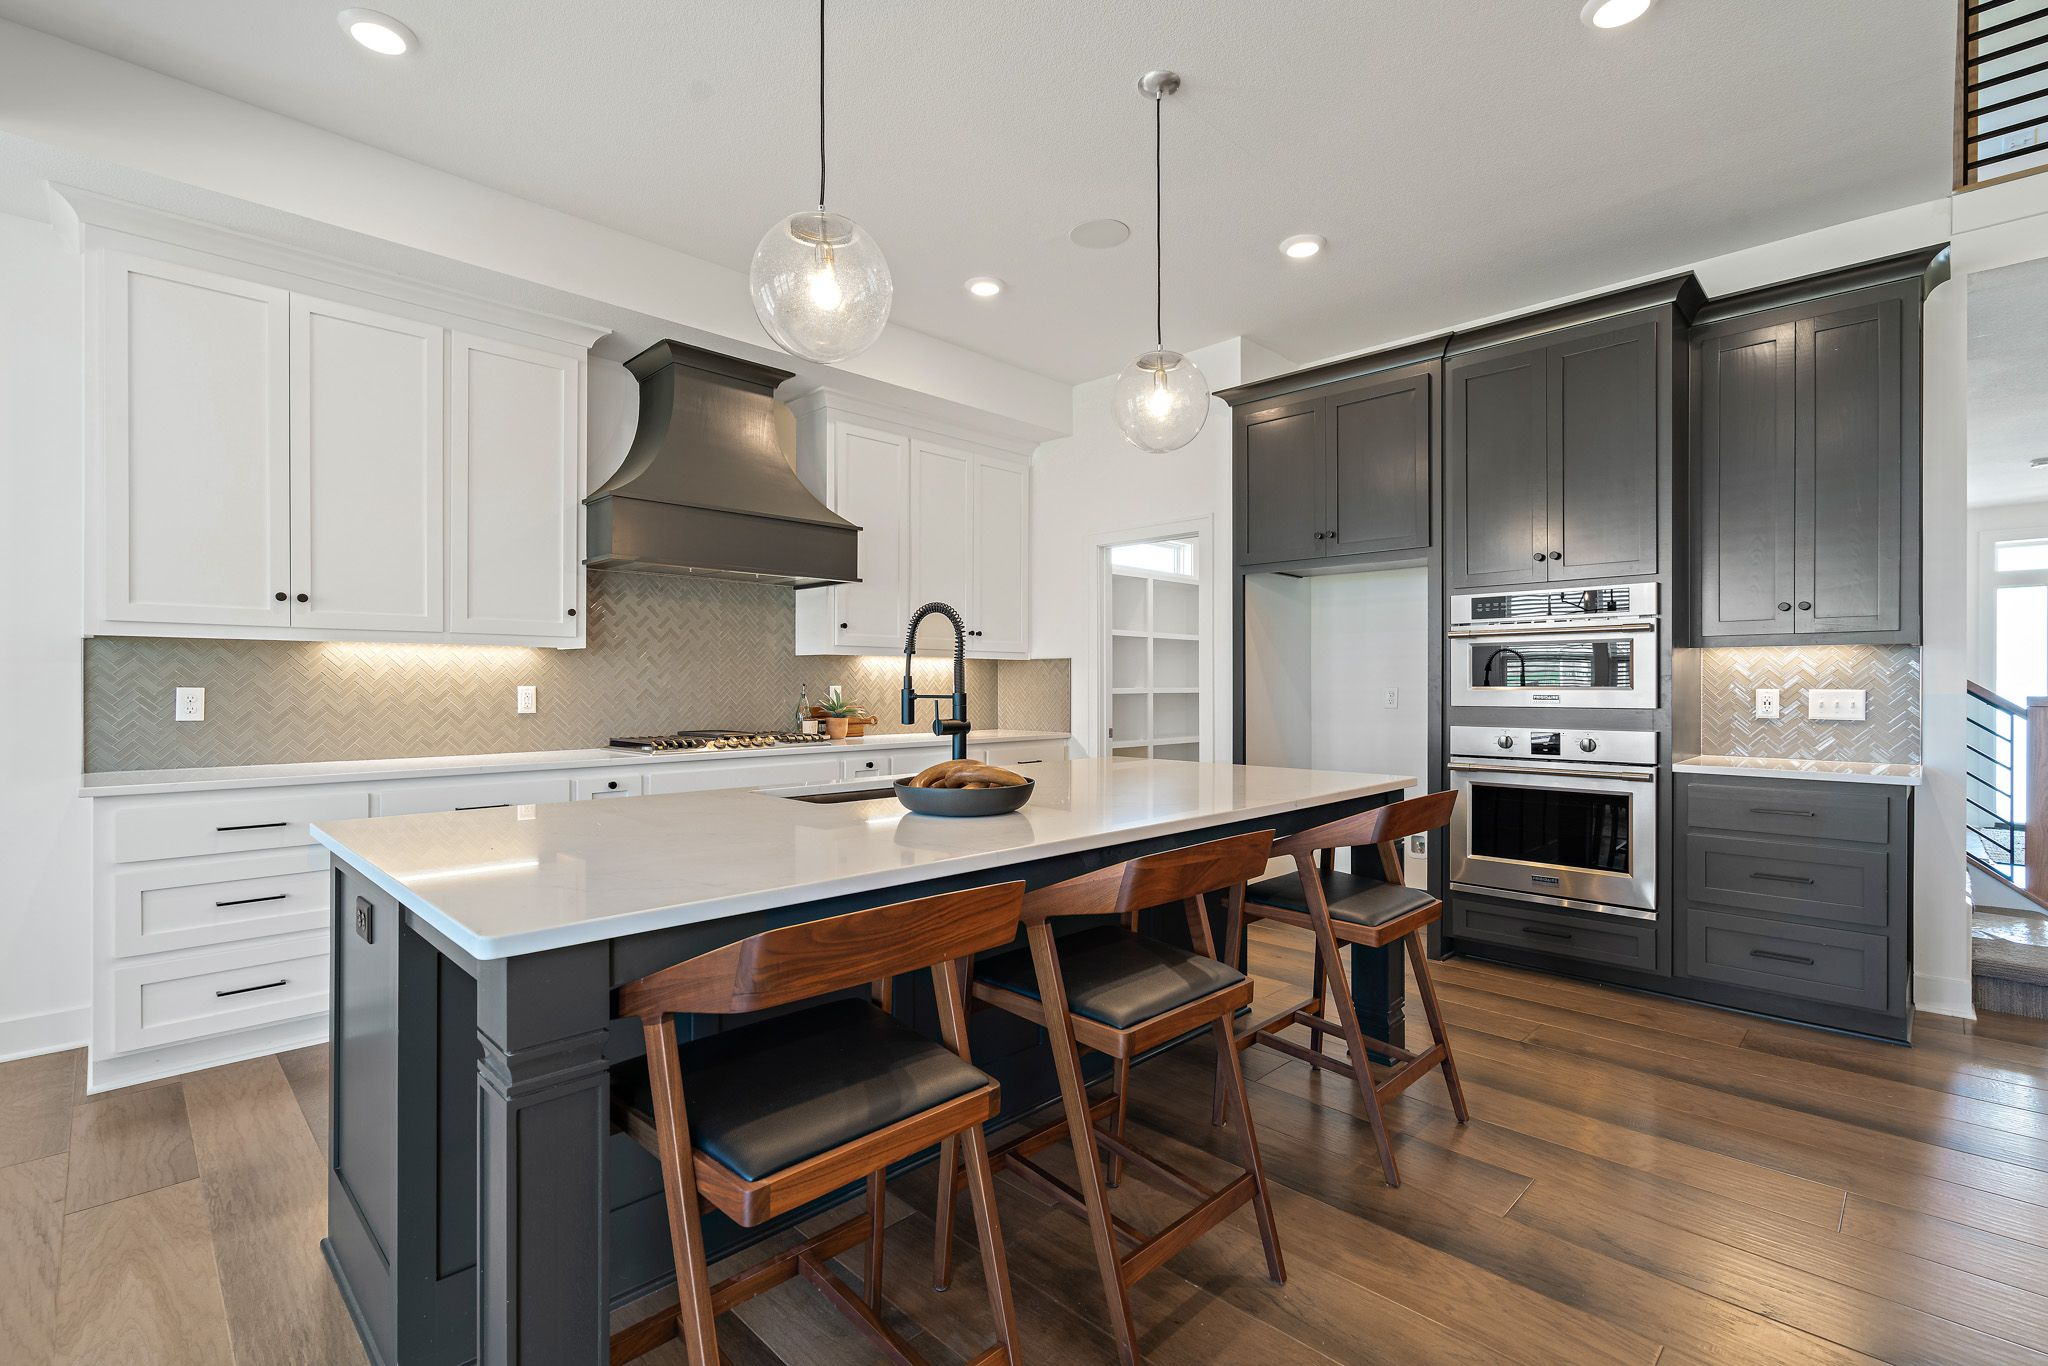 Kitchen featured in the Sydney By Summit Homes in Kansas City, MO